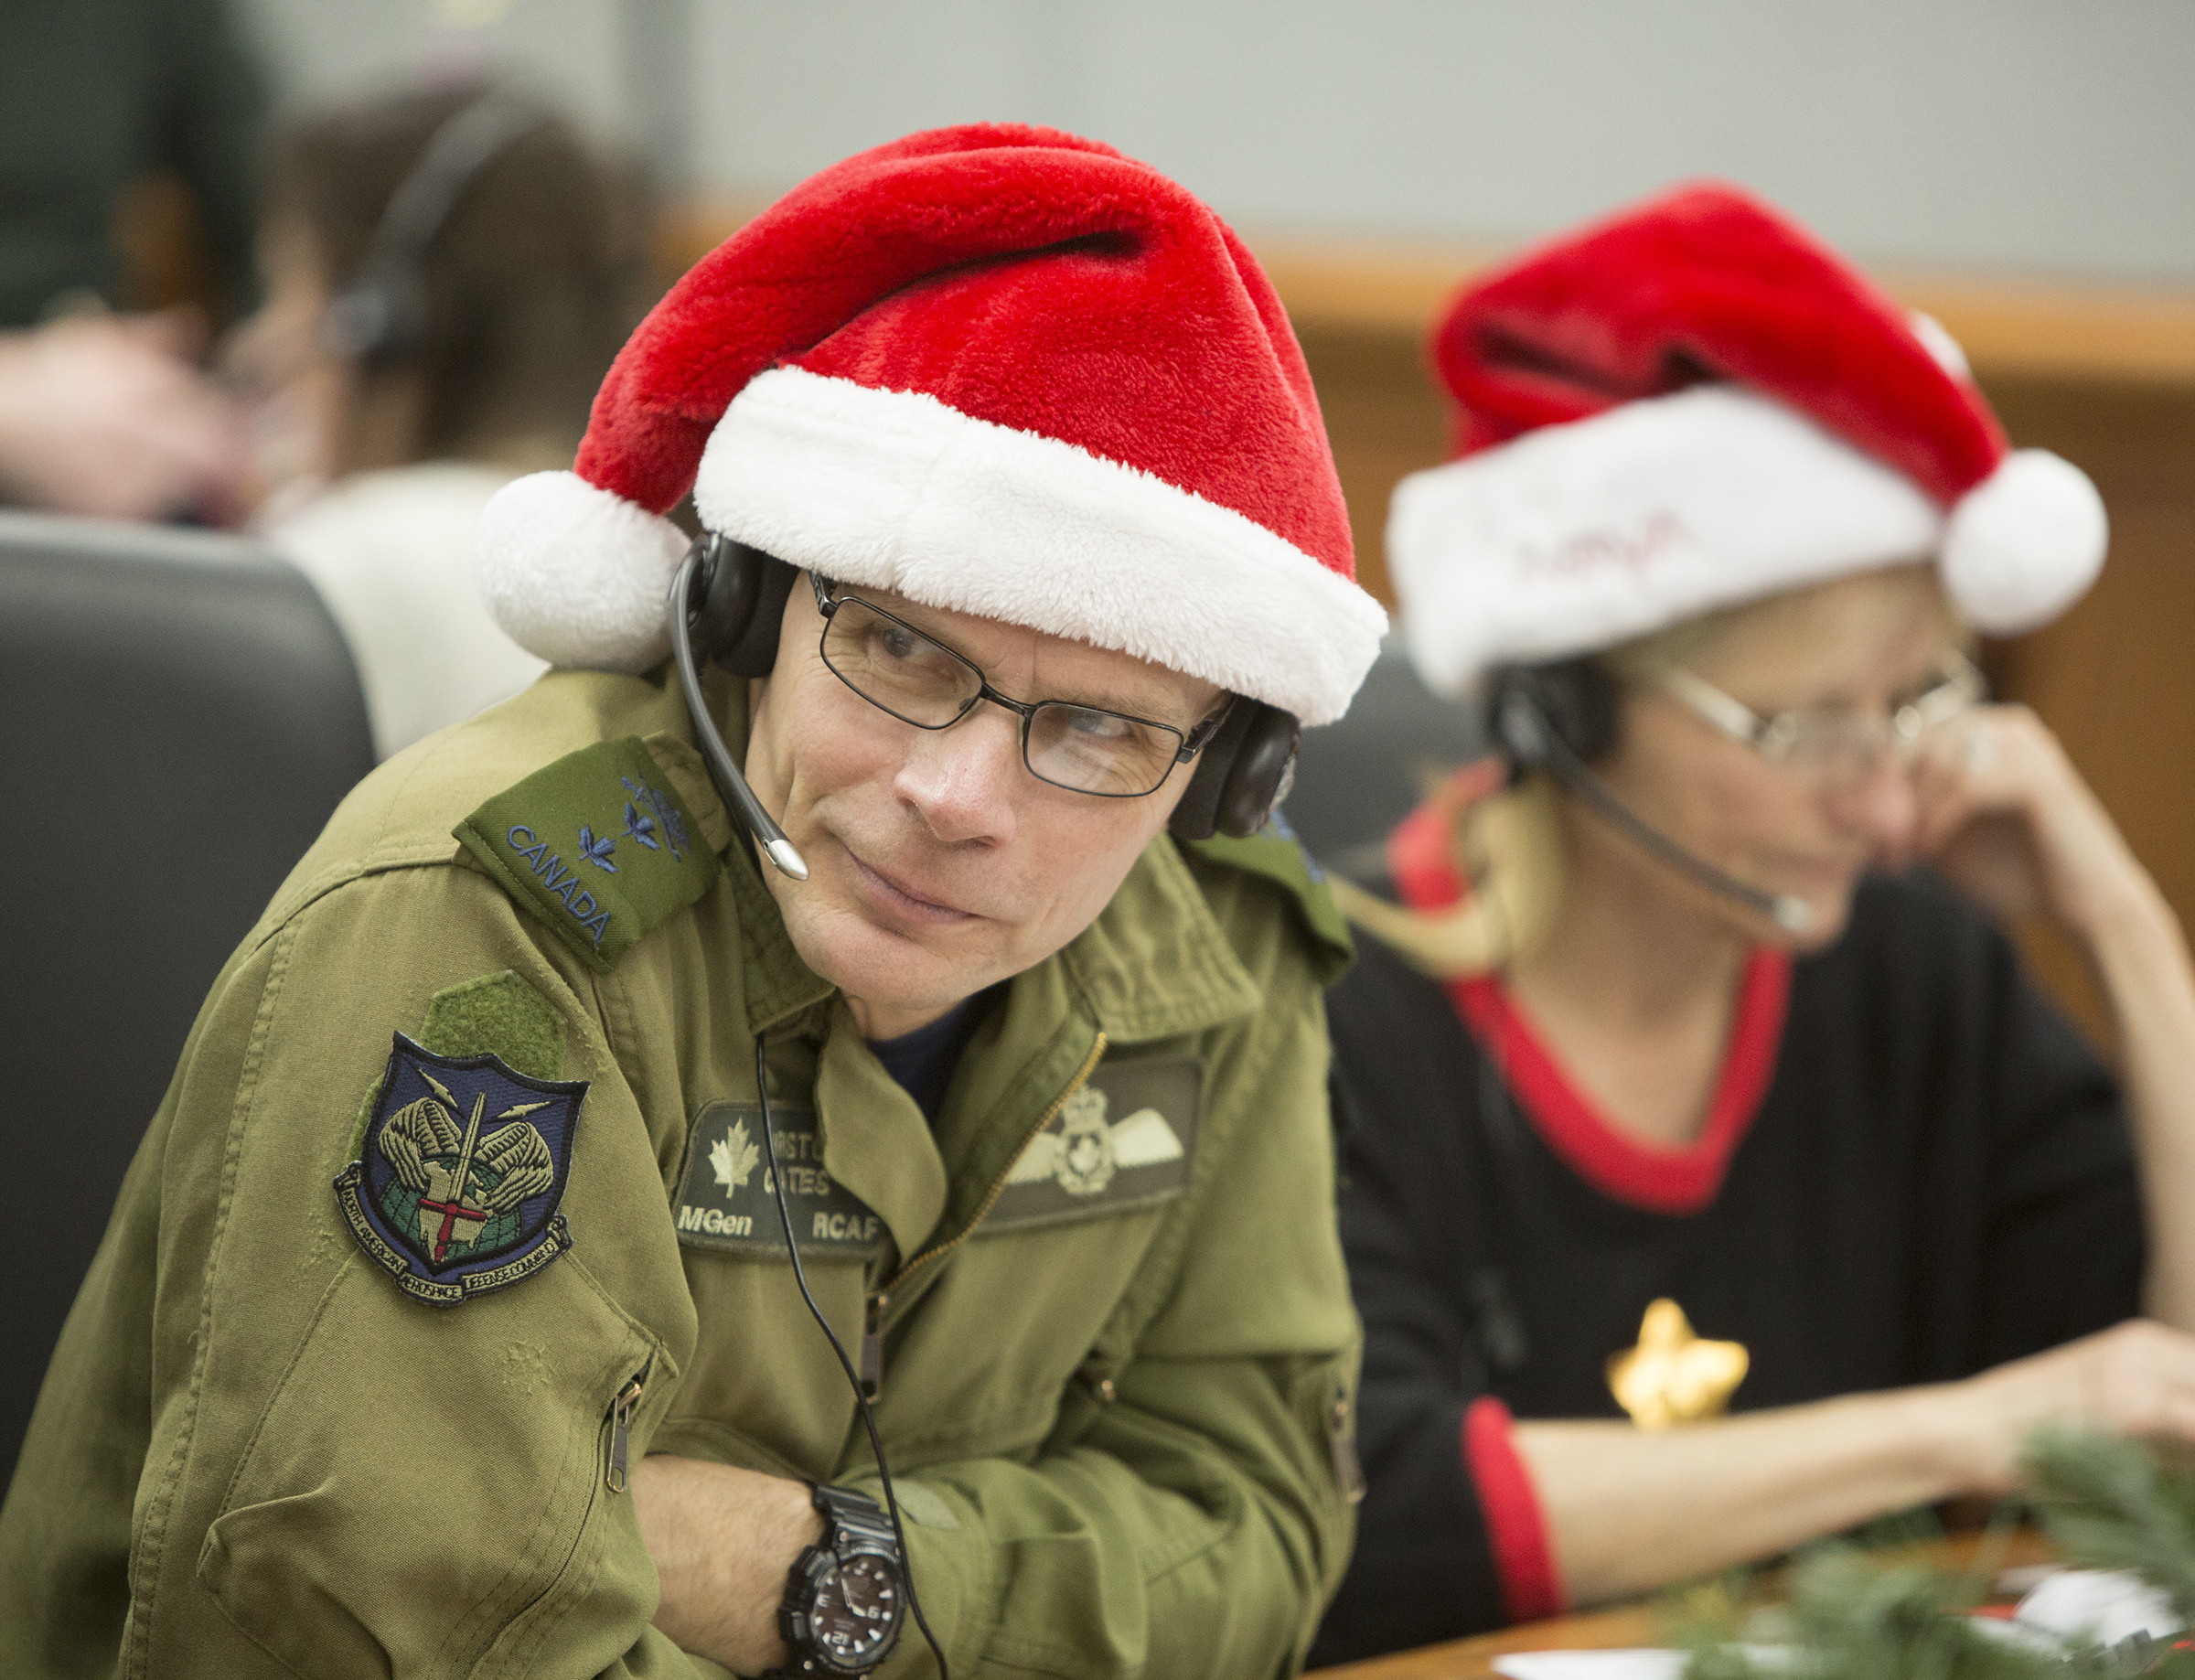 The Royal Canadian Air Force's Major-General Christopher Coates listens intently to a caller during the 2016 NORAD Tracks Santa Event at Peterson Air Force Base in Colorado on December 24. Major-General Coates is director of NORAD Operations at NORAD's binational headquarters at Peterson AFB. PHOTO: Dennis Carlyle, NORAD, 161224-F-CN249-400